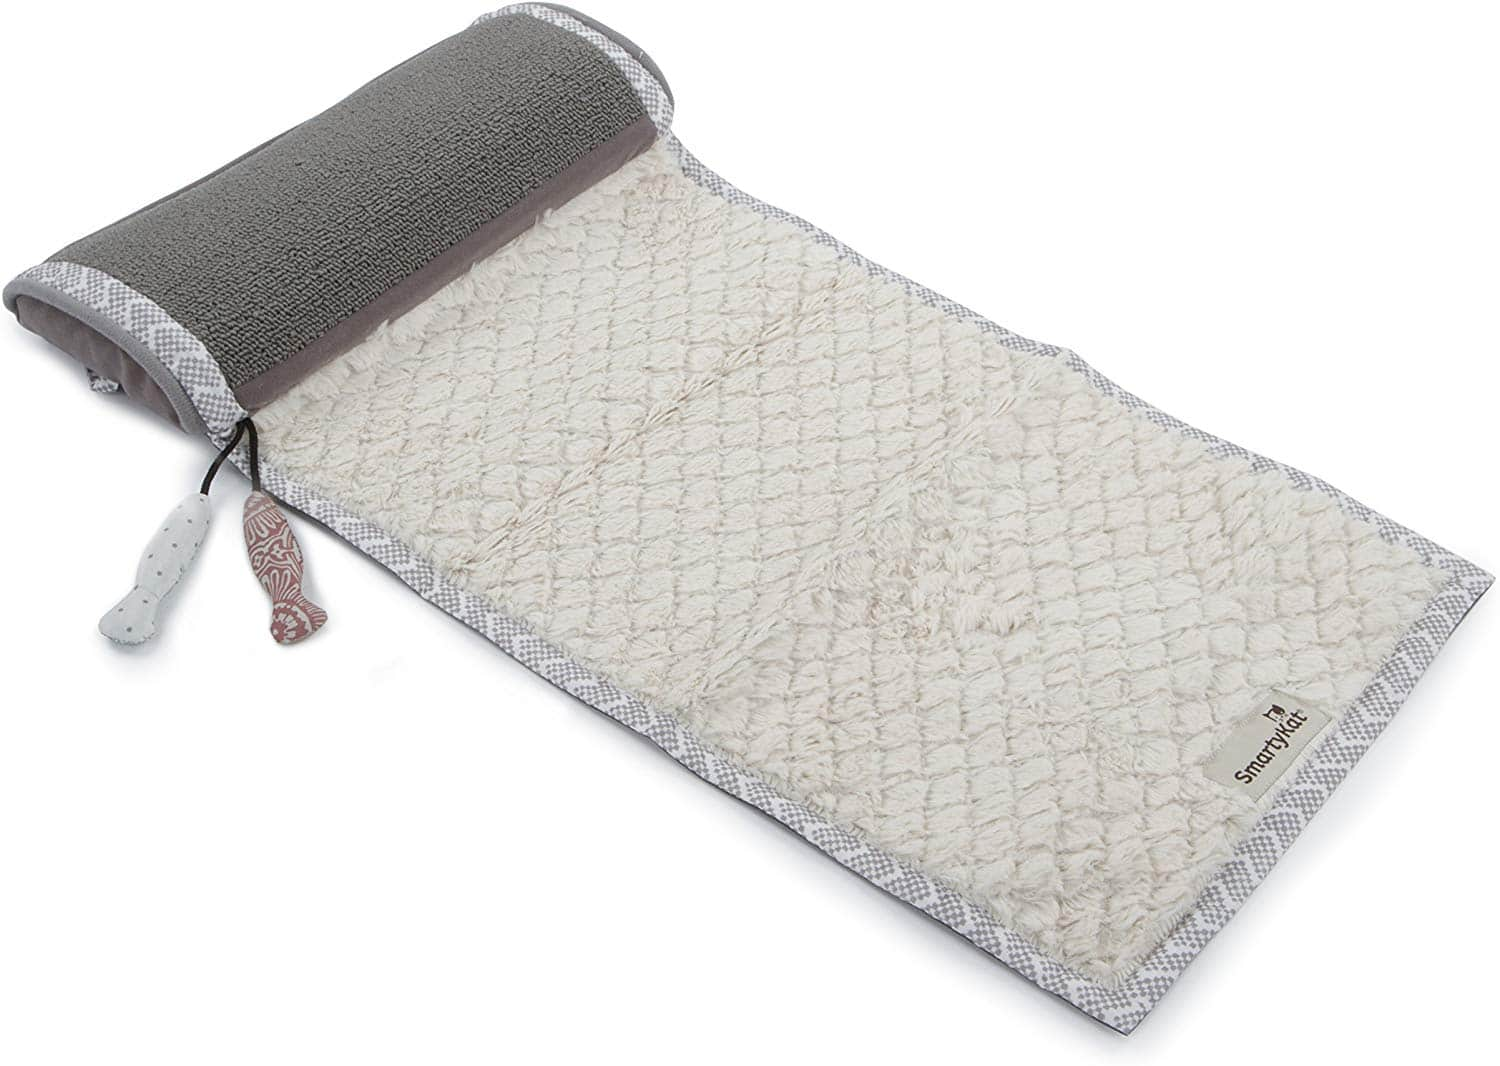 SmartyKat ScratchNRelax Cat Scratcher Mat and Lounge- $6.75 at Amazon + FS with Prime